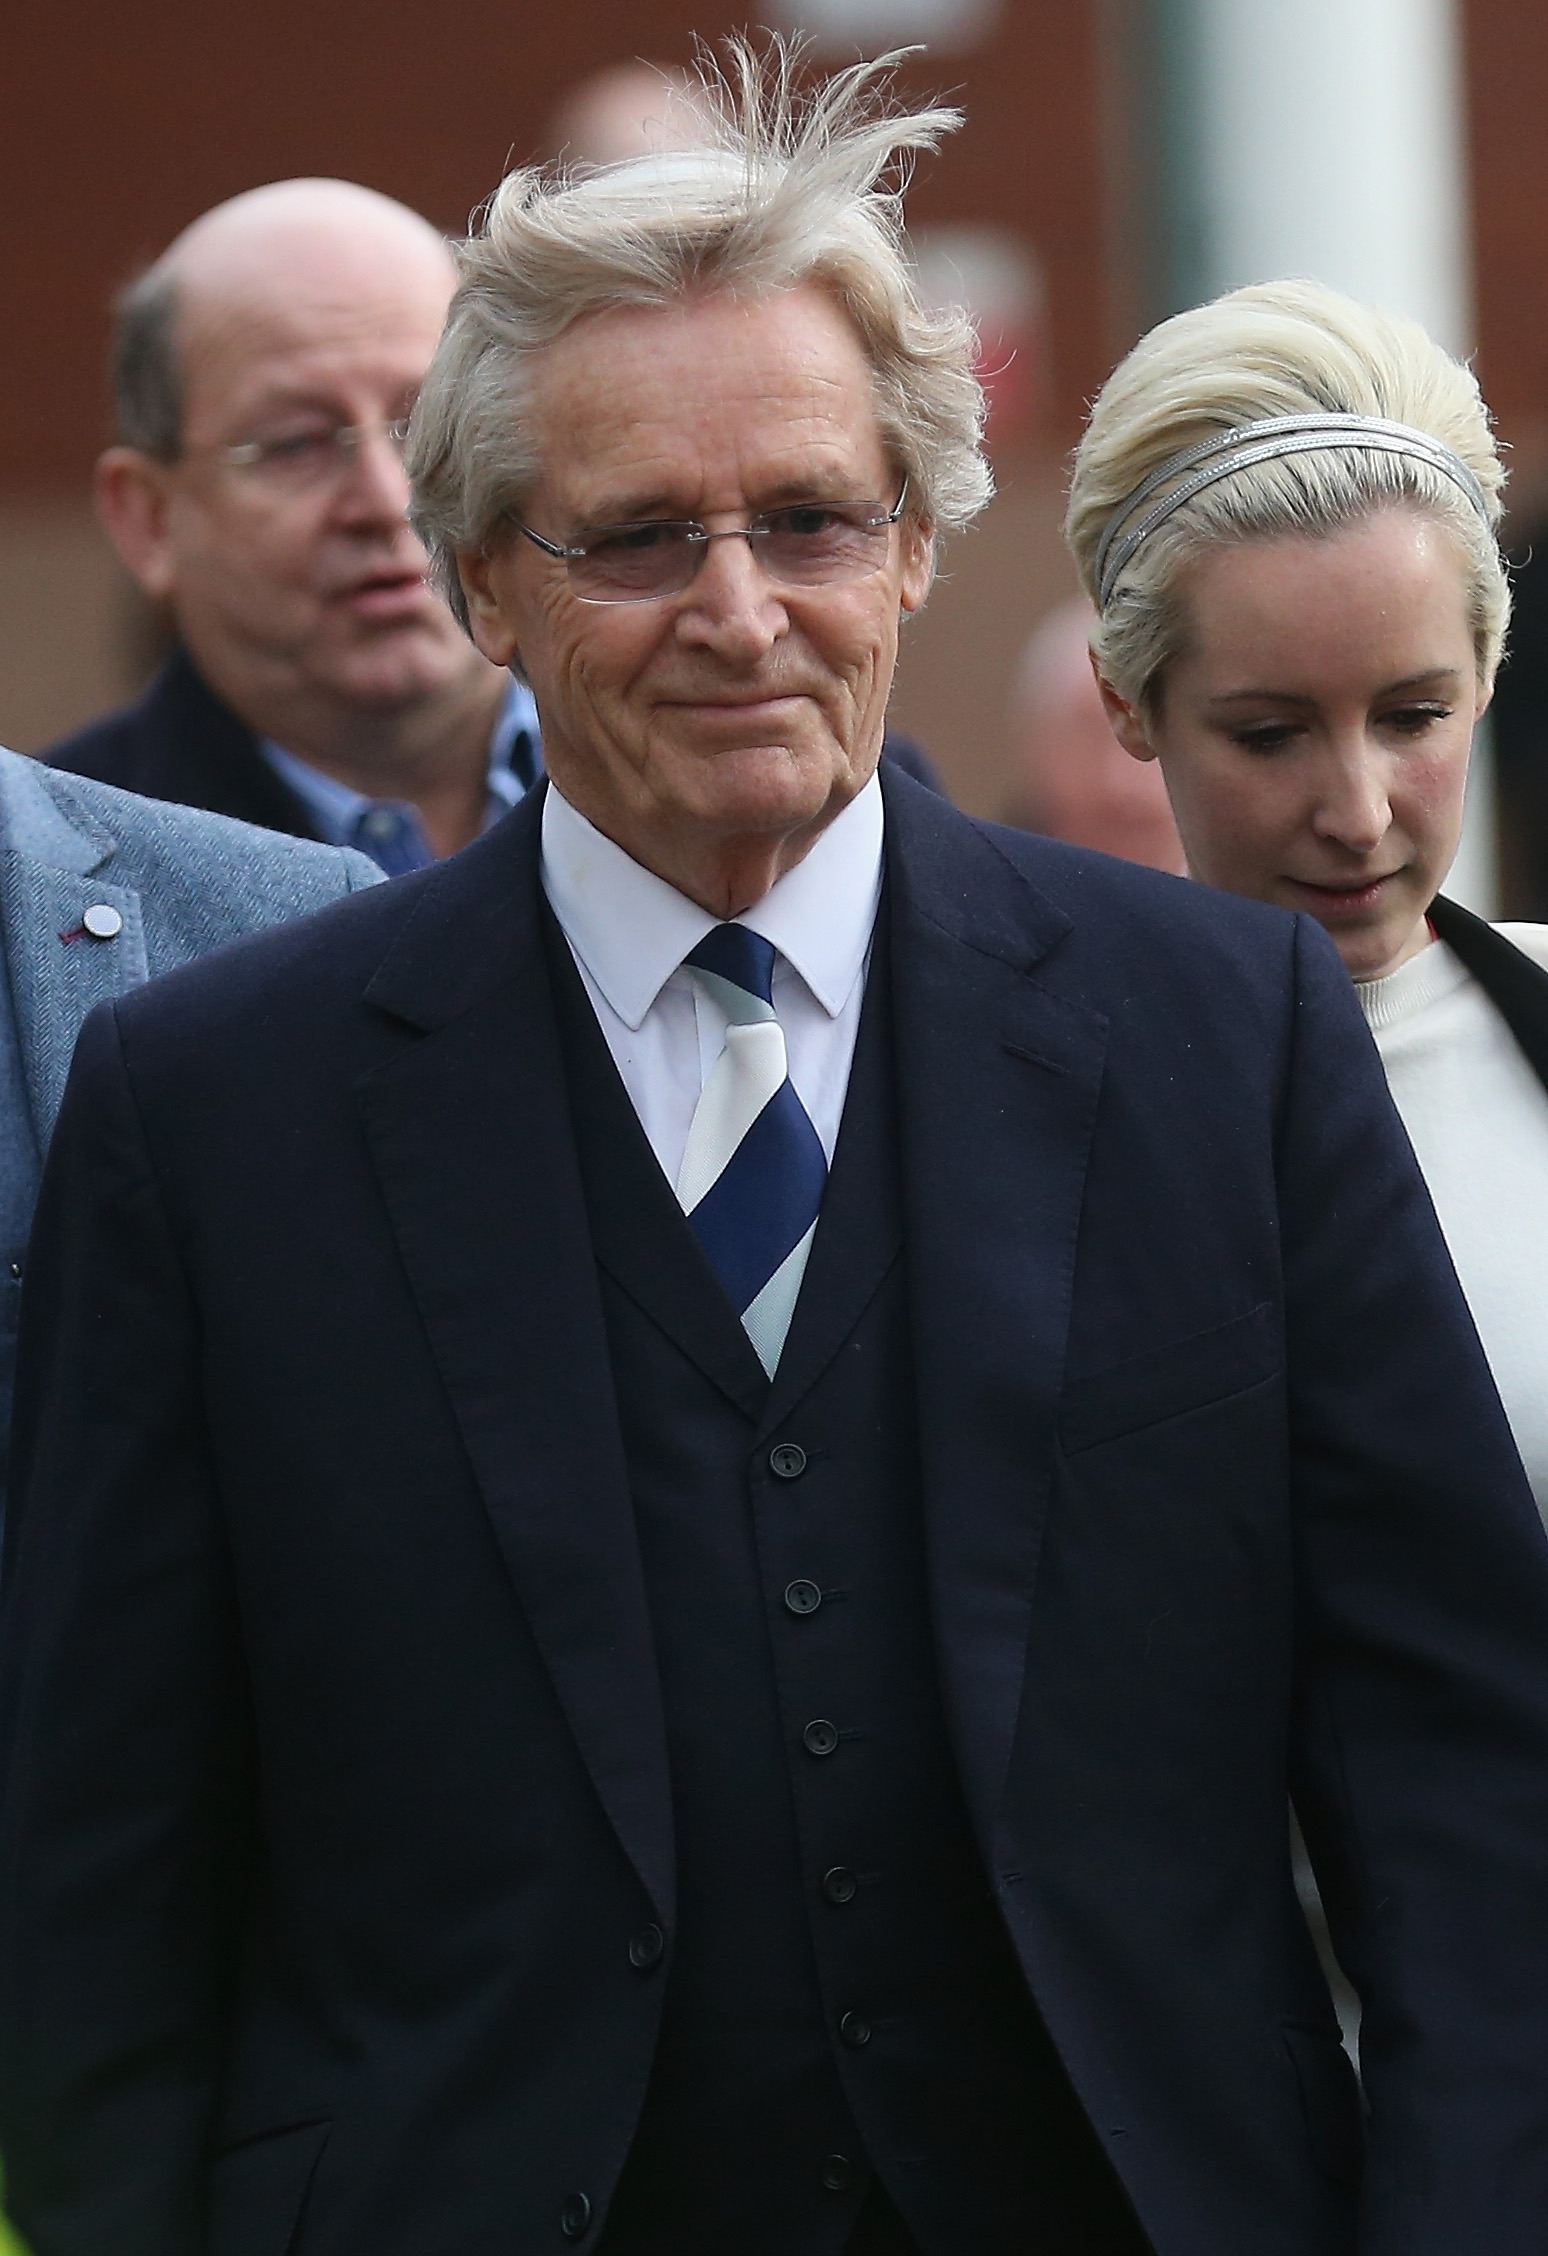 British actor William Roache leaves court Friday after being found innocent in sexual assault allegations.